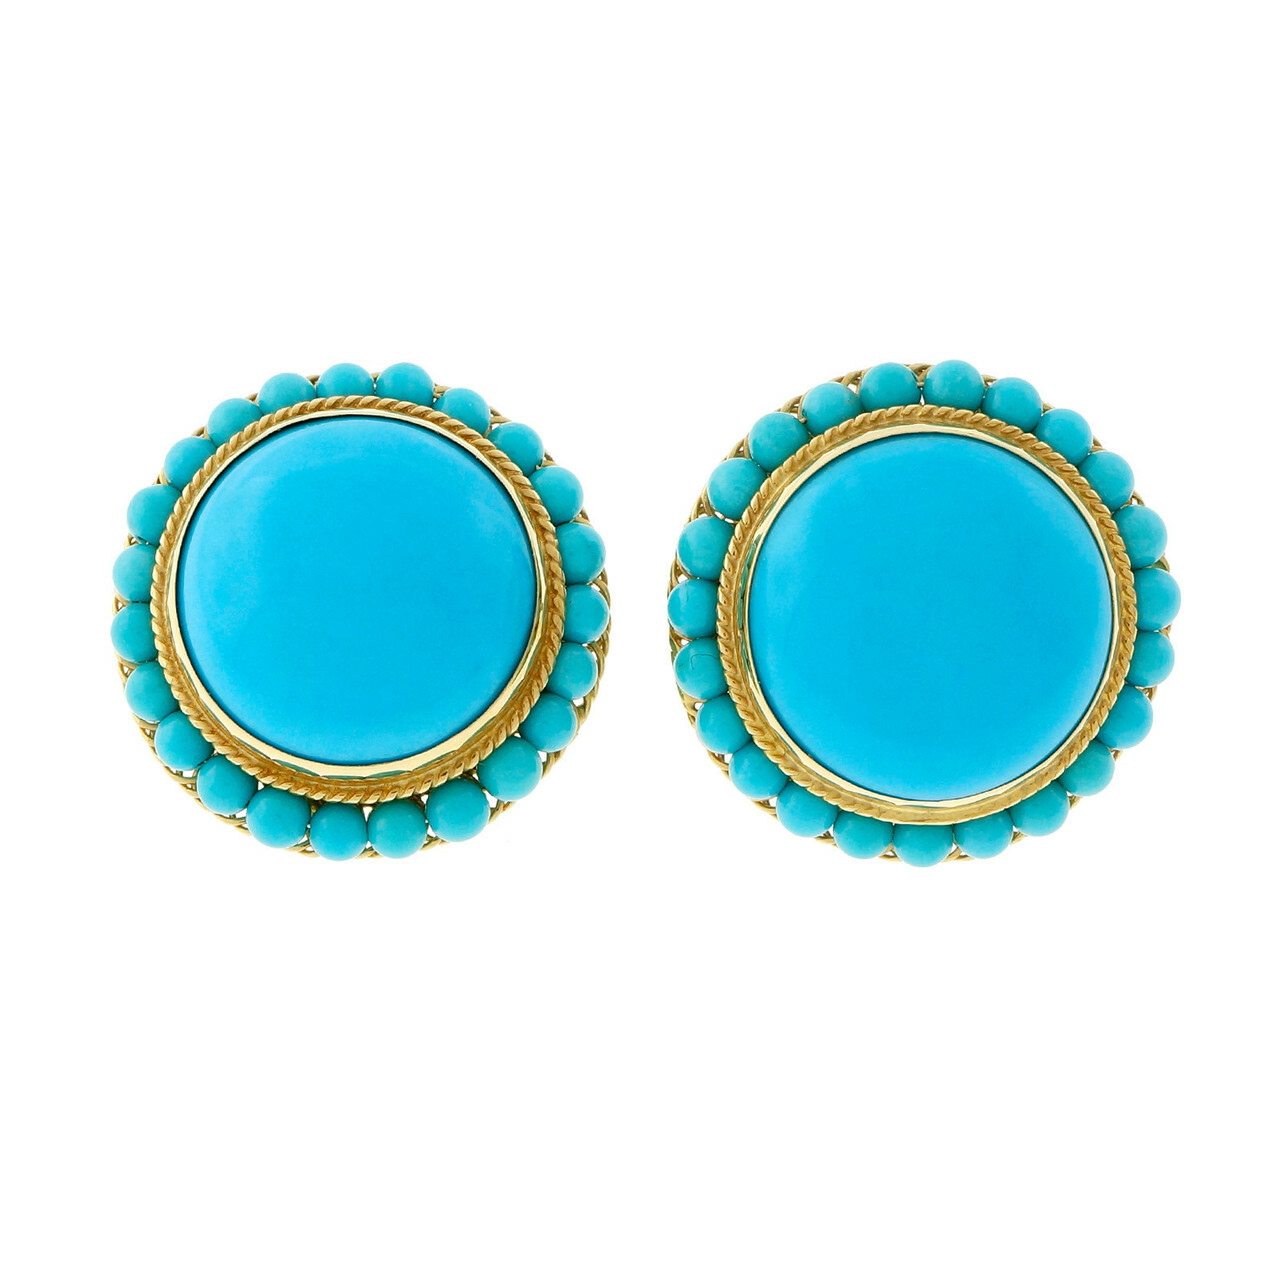 Summer Gemstones You Will Want to Wear